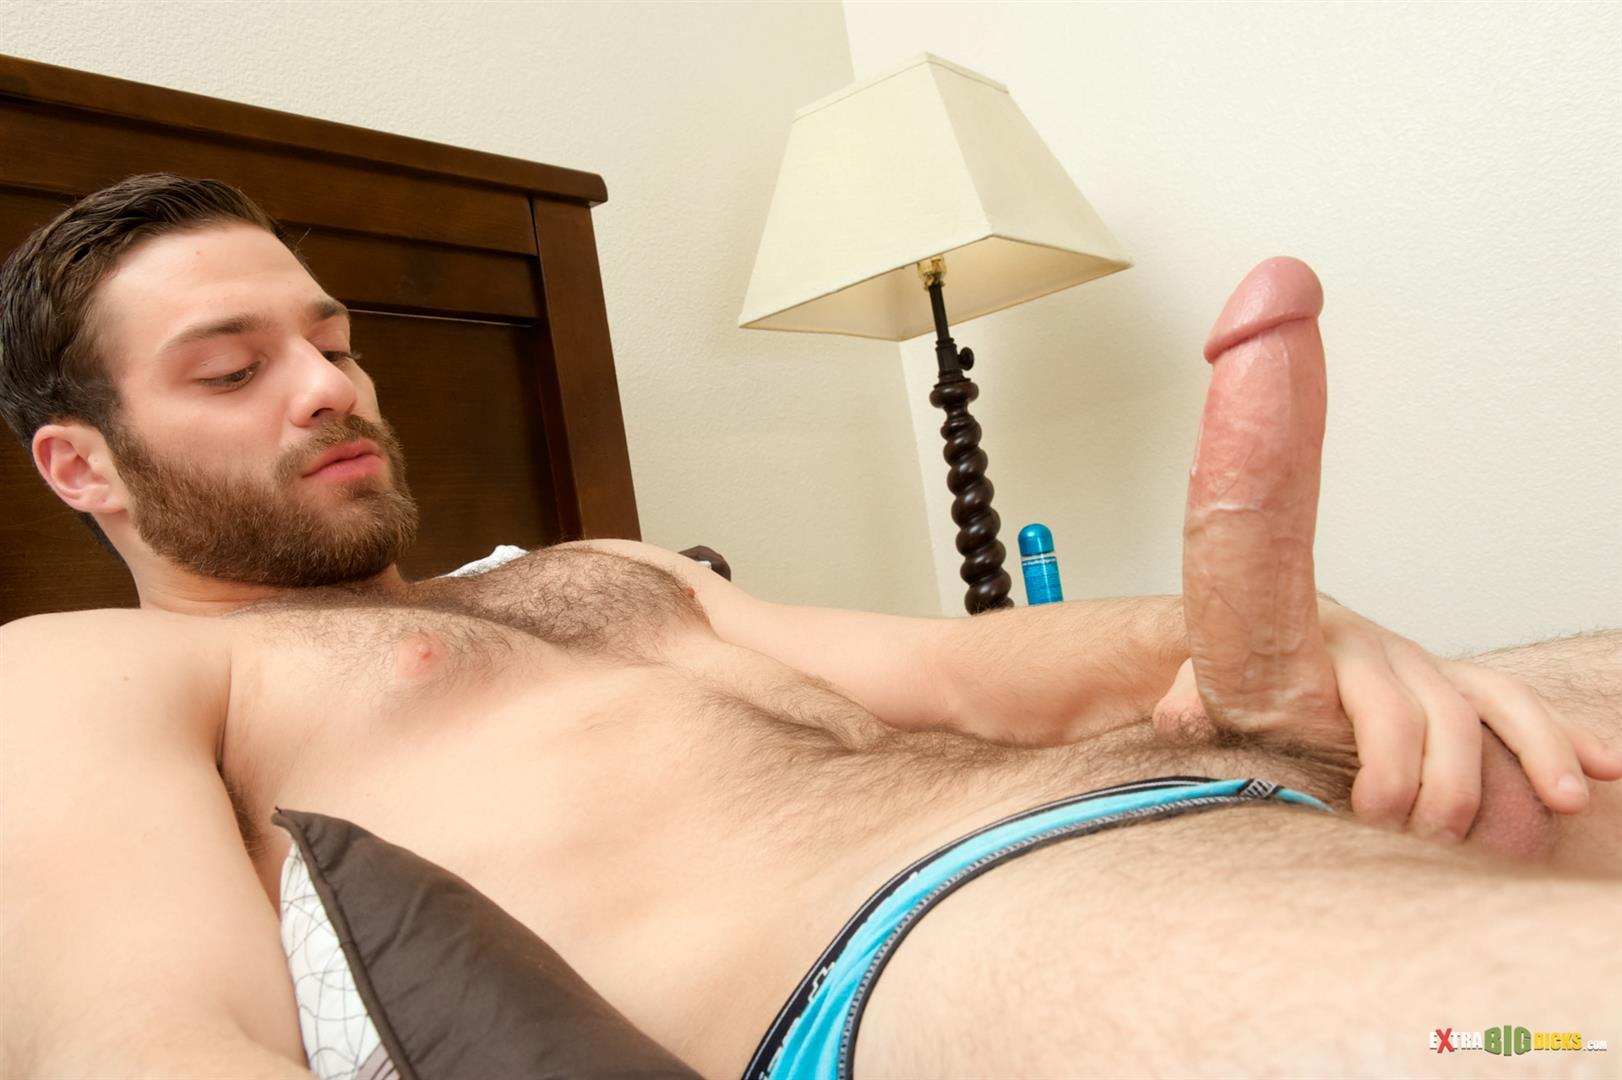 Extra-Big-Dicks-Tommy-Defendi-Hairy-Muscle-Guy-Jerking-Off-Amateur-Gay-Porn-03 Hairy Muscle Stud Tommy Defendi Jerking Off His Big Thick Cock